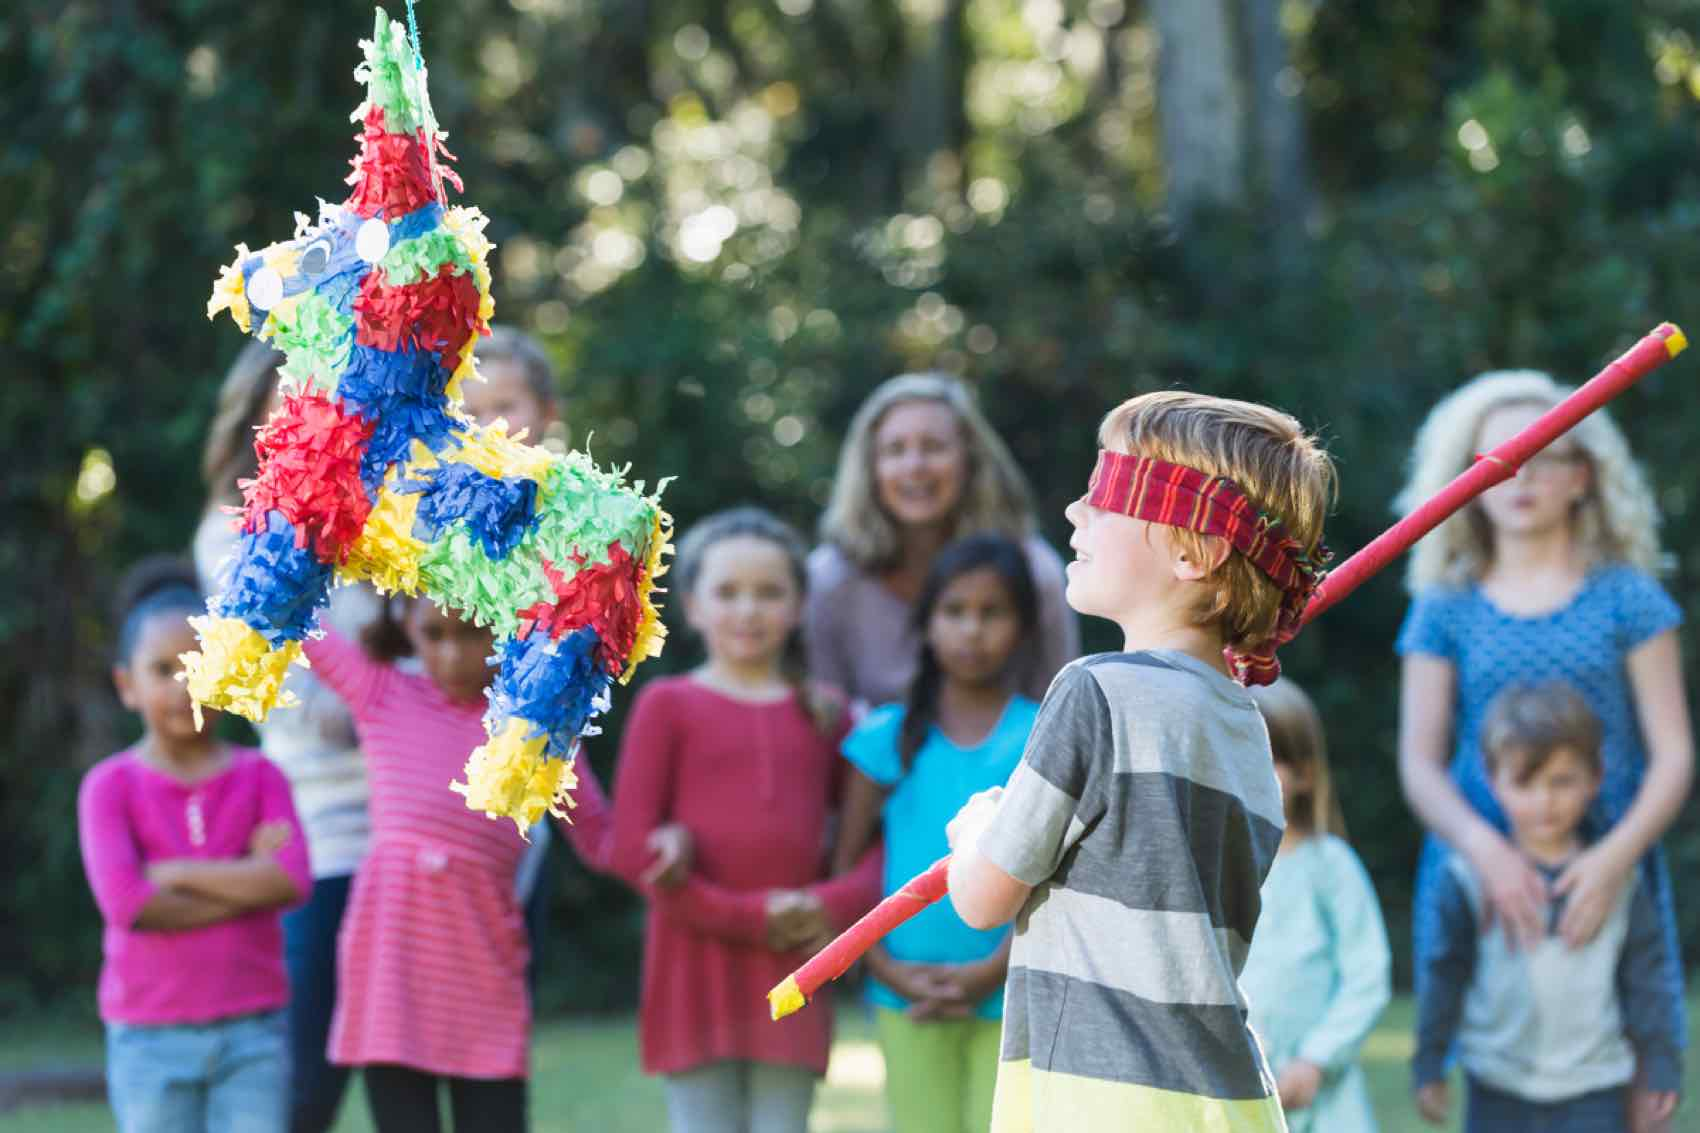 Boy at party hitting pinata with stick in Mexico